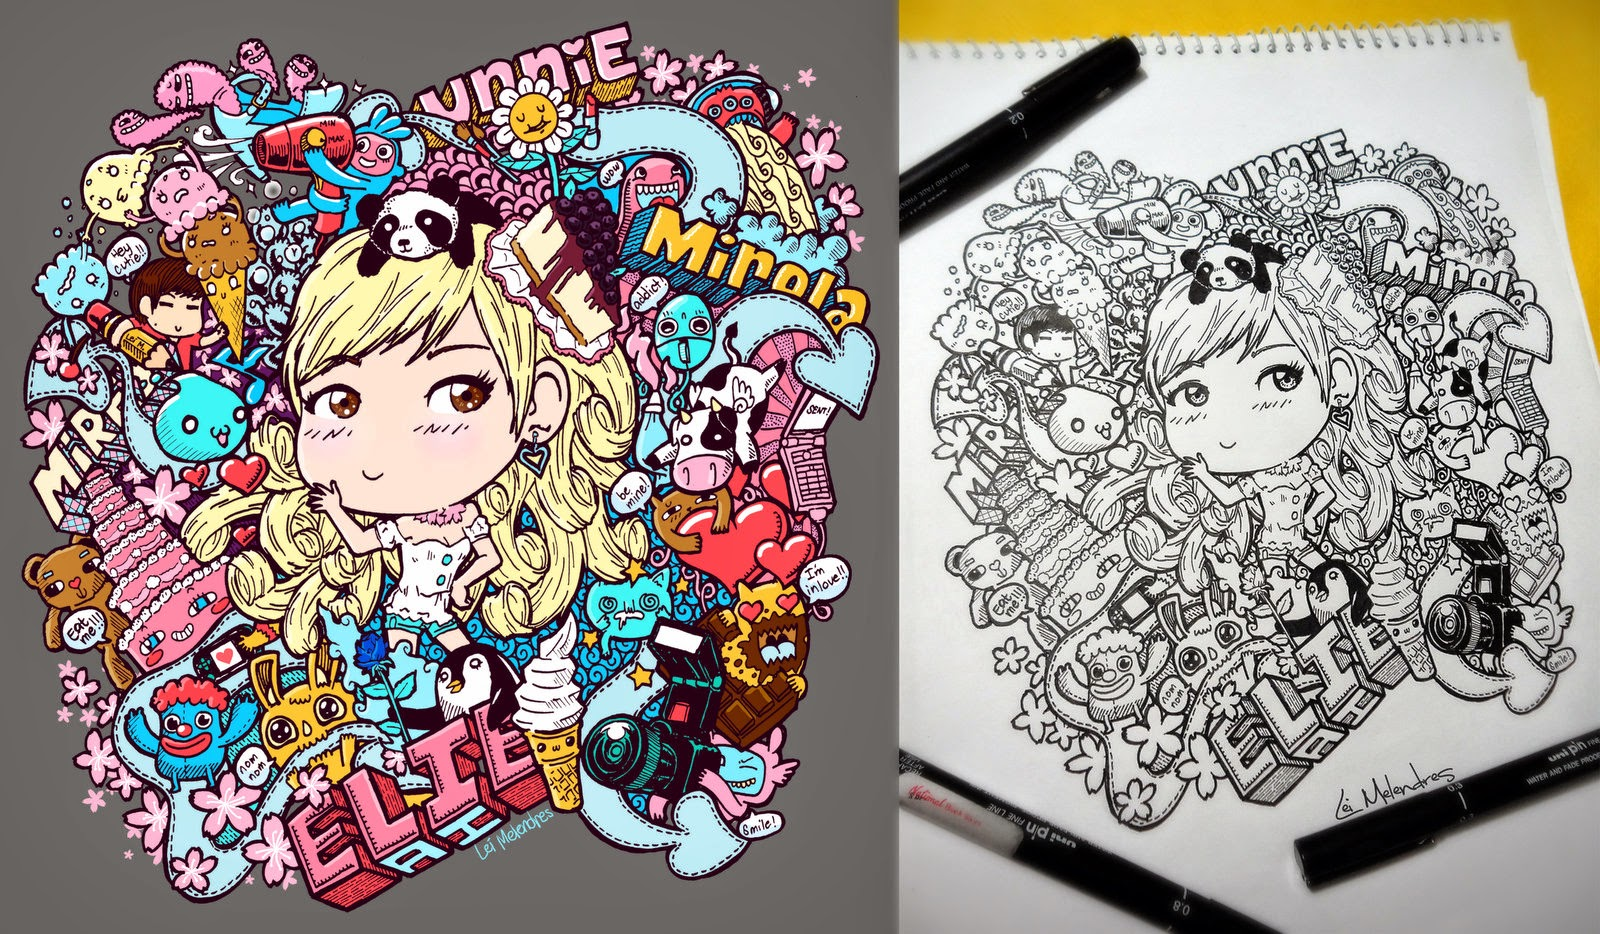 18-Doodle-Blondie-Lei-Melendres-Leight-Infinity-Mix-Doodles-www-designstack-co